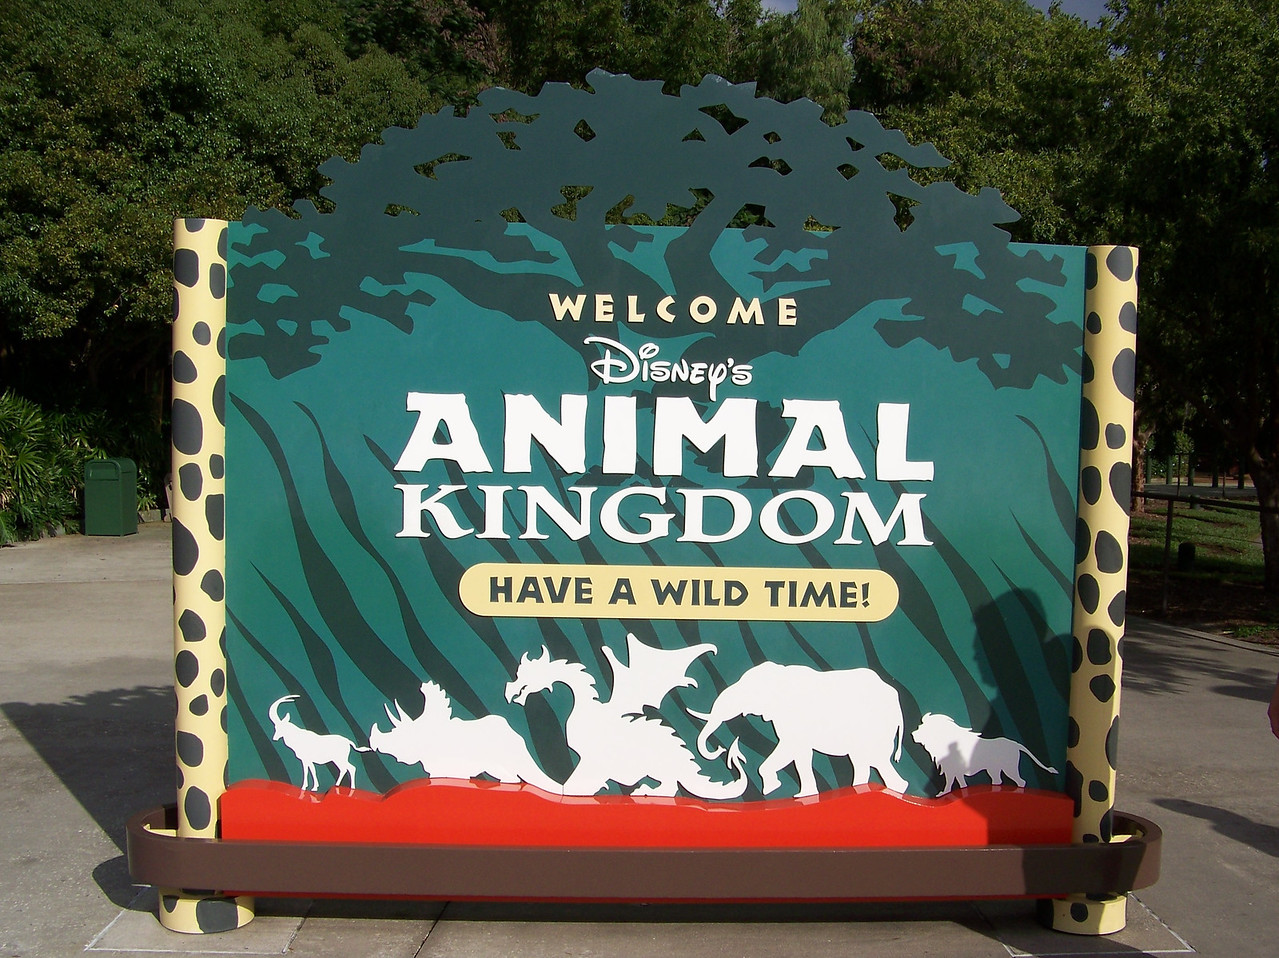 We only went to Animal Kingdom once during this trip.  Pat and Jeff arrived early for a character breakfast, Dave and I got there just after 9:30, and we all left at about 4pm (we had a reservation for the Fireworks Dessert Party at the Magic Kingdom that same evening).  In the world of theme park visits, that barely qualifies as a half day.  I mean, I was once at Disneyland from 8am to 2am the following morning!  But as it turned out, half a day was more than enough time at Animal Kingdom for me.  Unfortunately, I didn't have a very good time here thanks to a severe case of motion sickness I experienced on my very first ride.